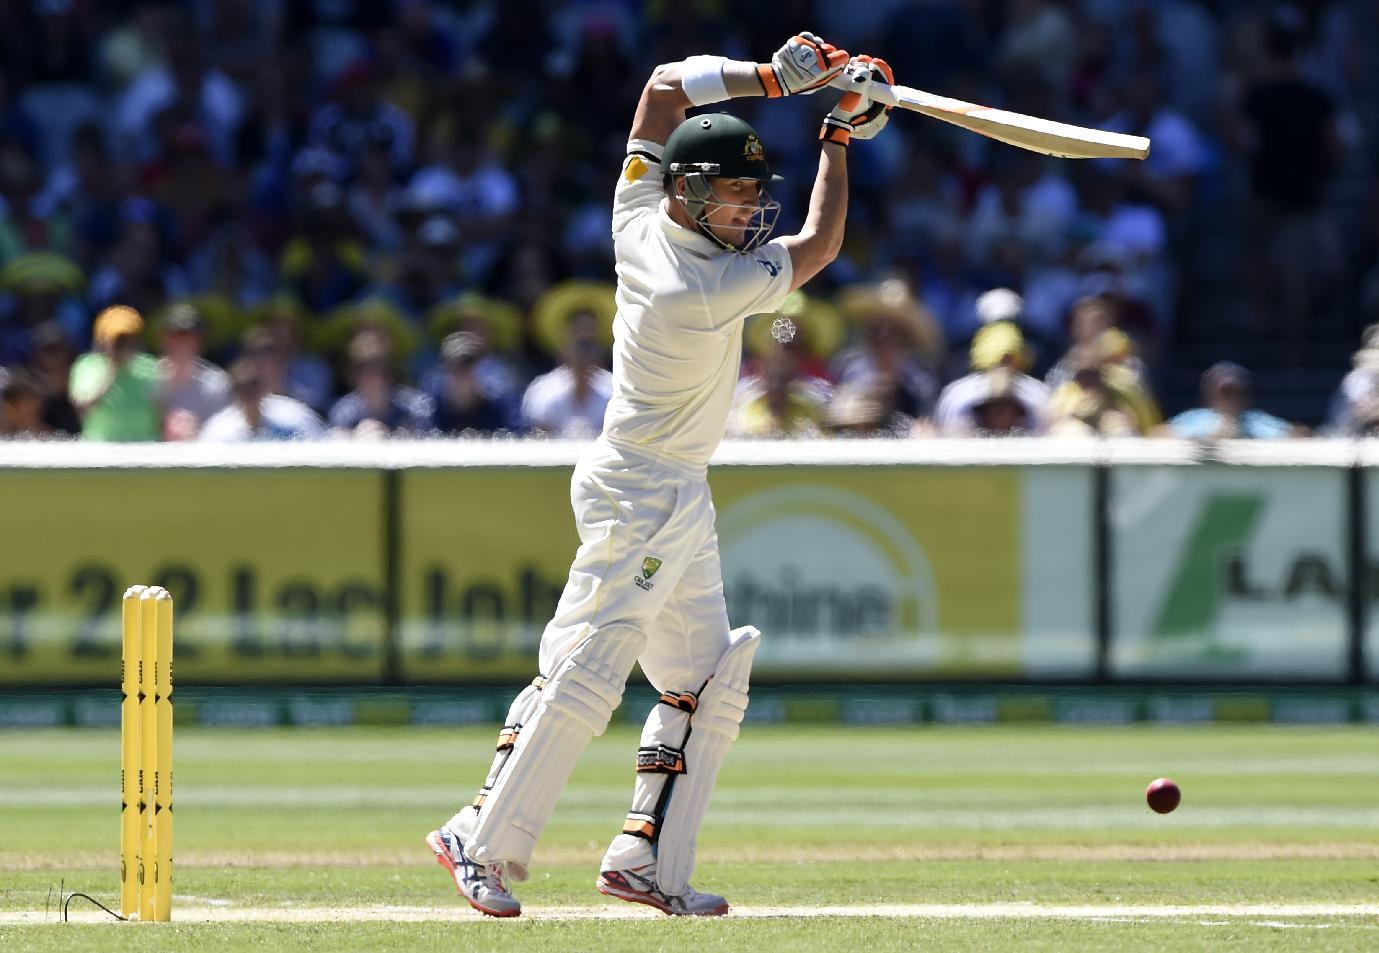 Australia 389-7 at lunch on day 2 of 3rd test vs India